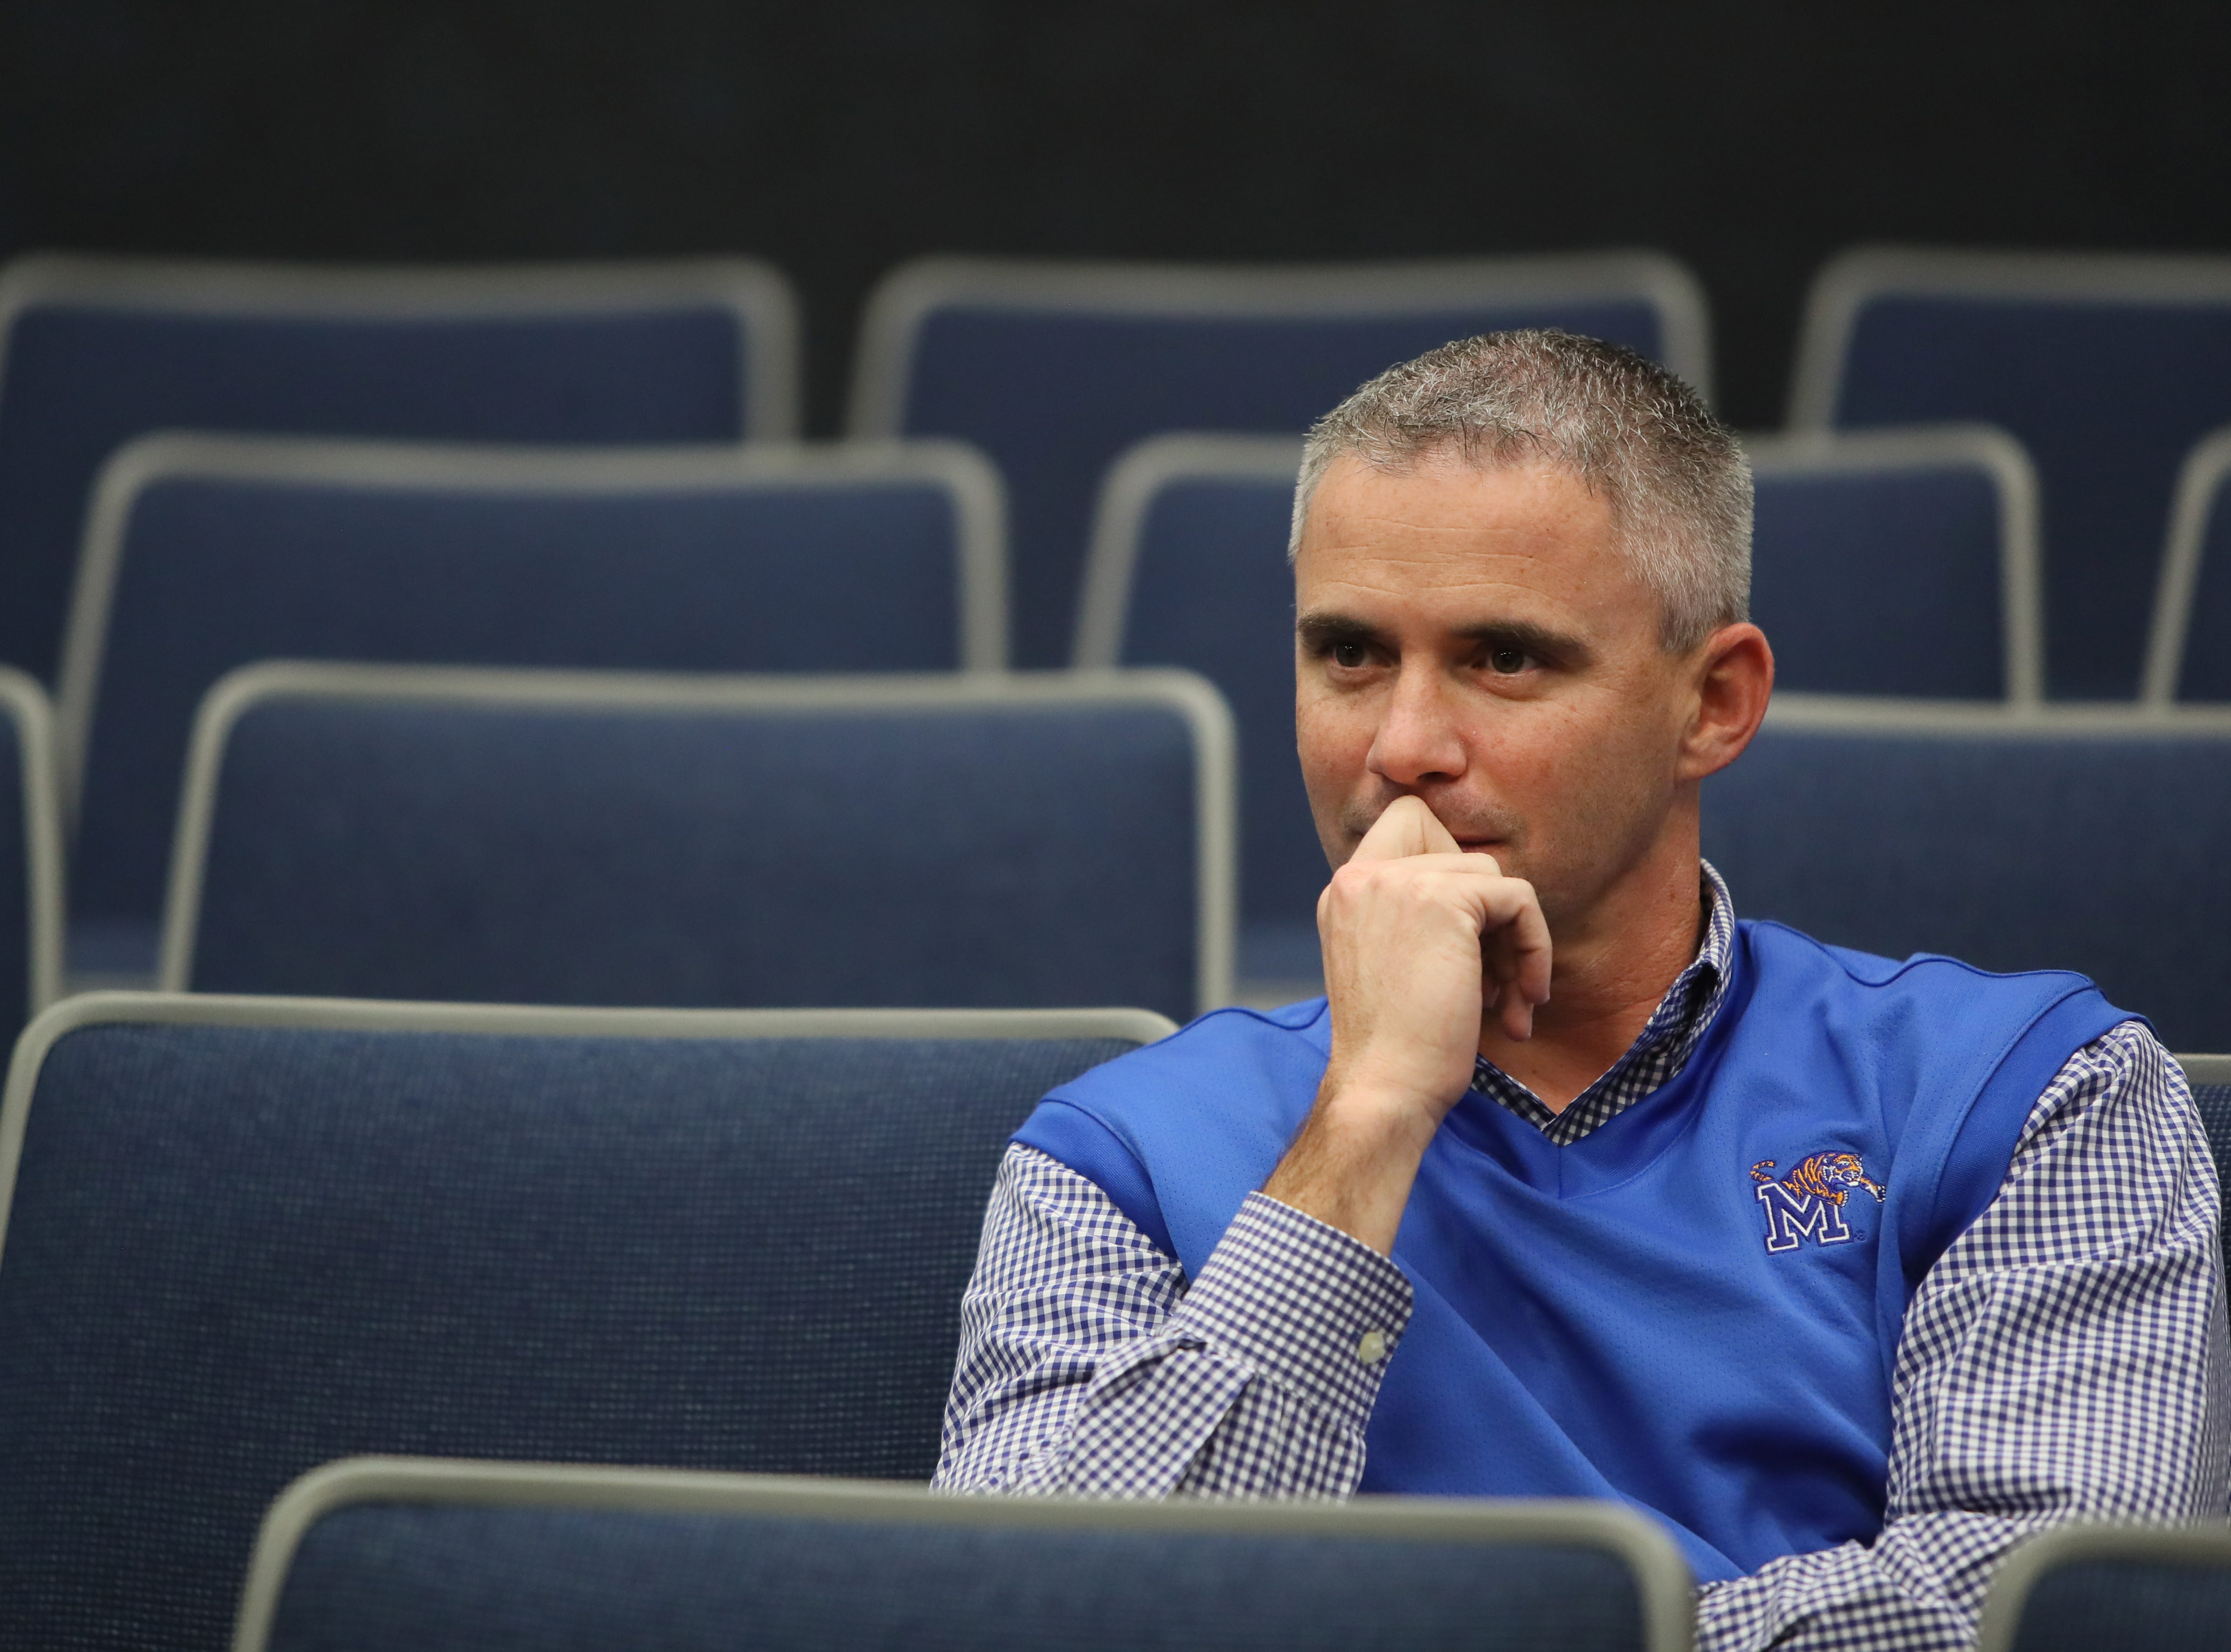 Memphis Tigers Head Coach Mike Norvell listens to questions during a press conference to introduce new coaching staff members on the university's campus Saturday, Jan. 12, 2019.